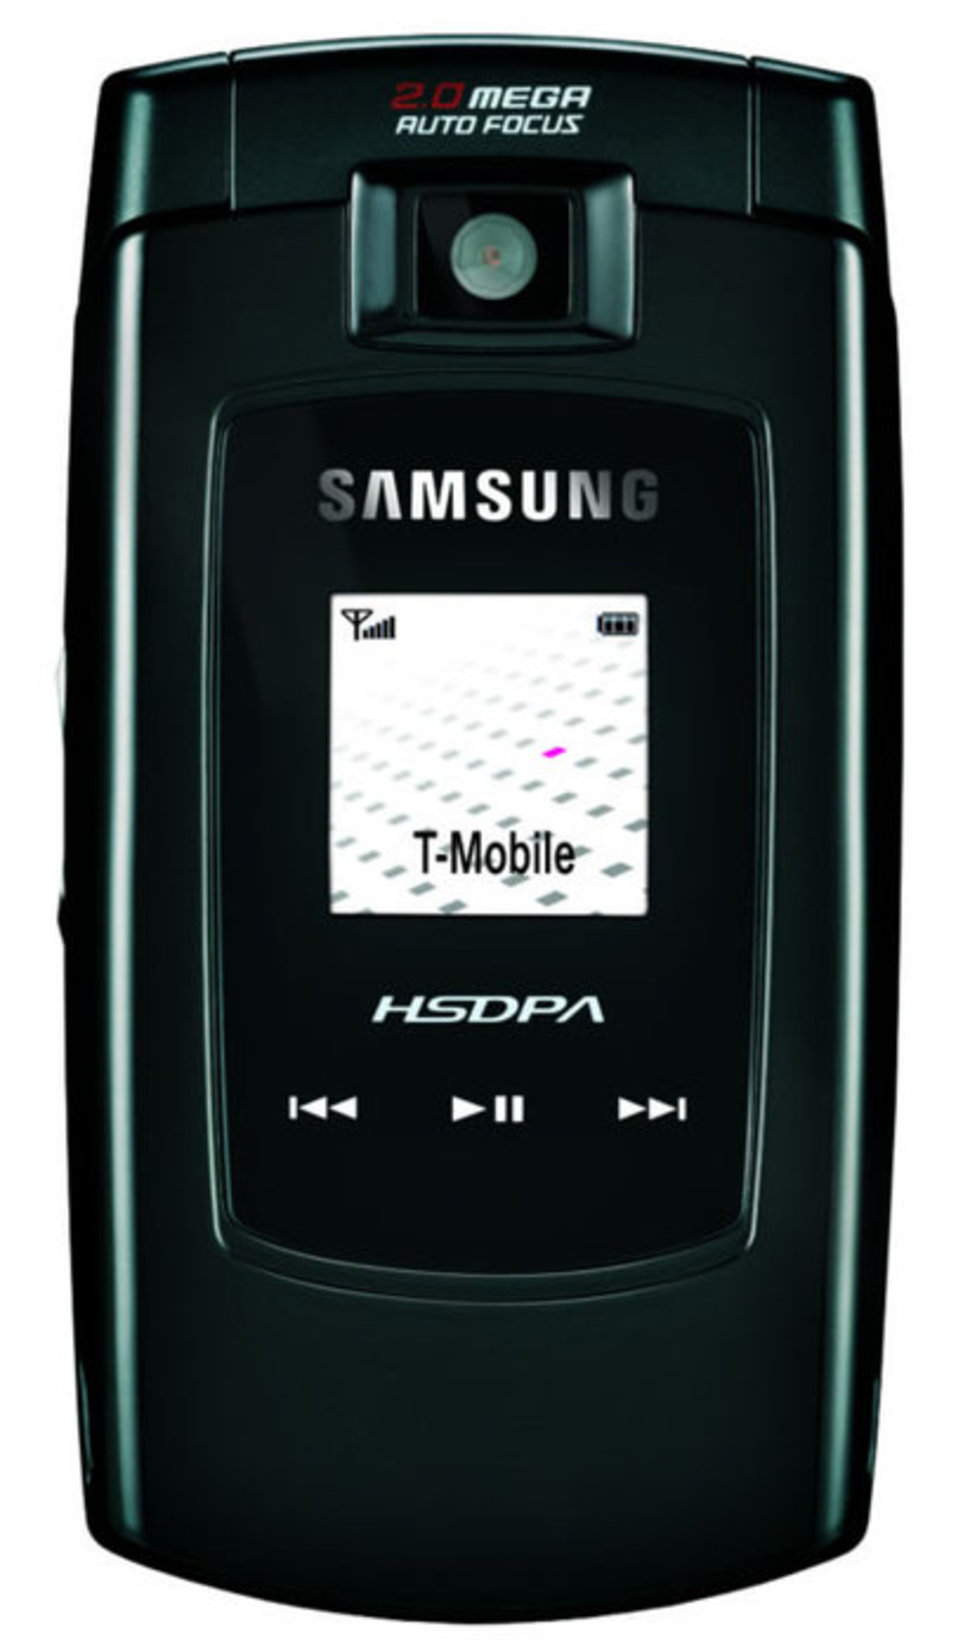 samsung sgh z560 hsdpa mobile phone pocket lint. Black Bedroom Furniture Sets. Home Design Ideas